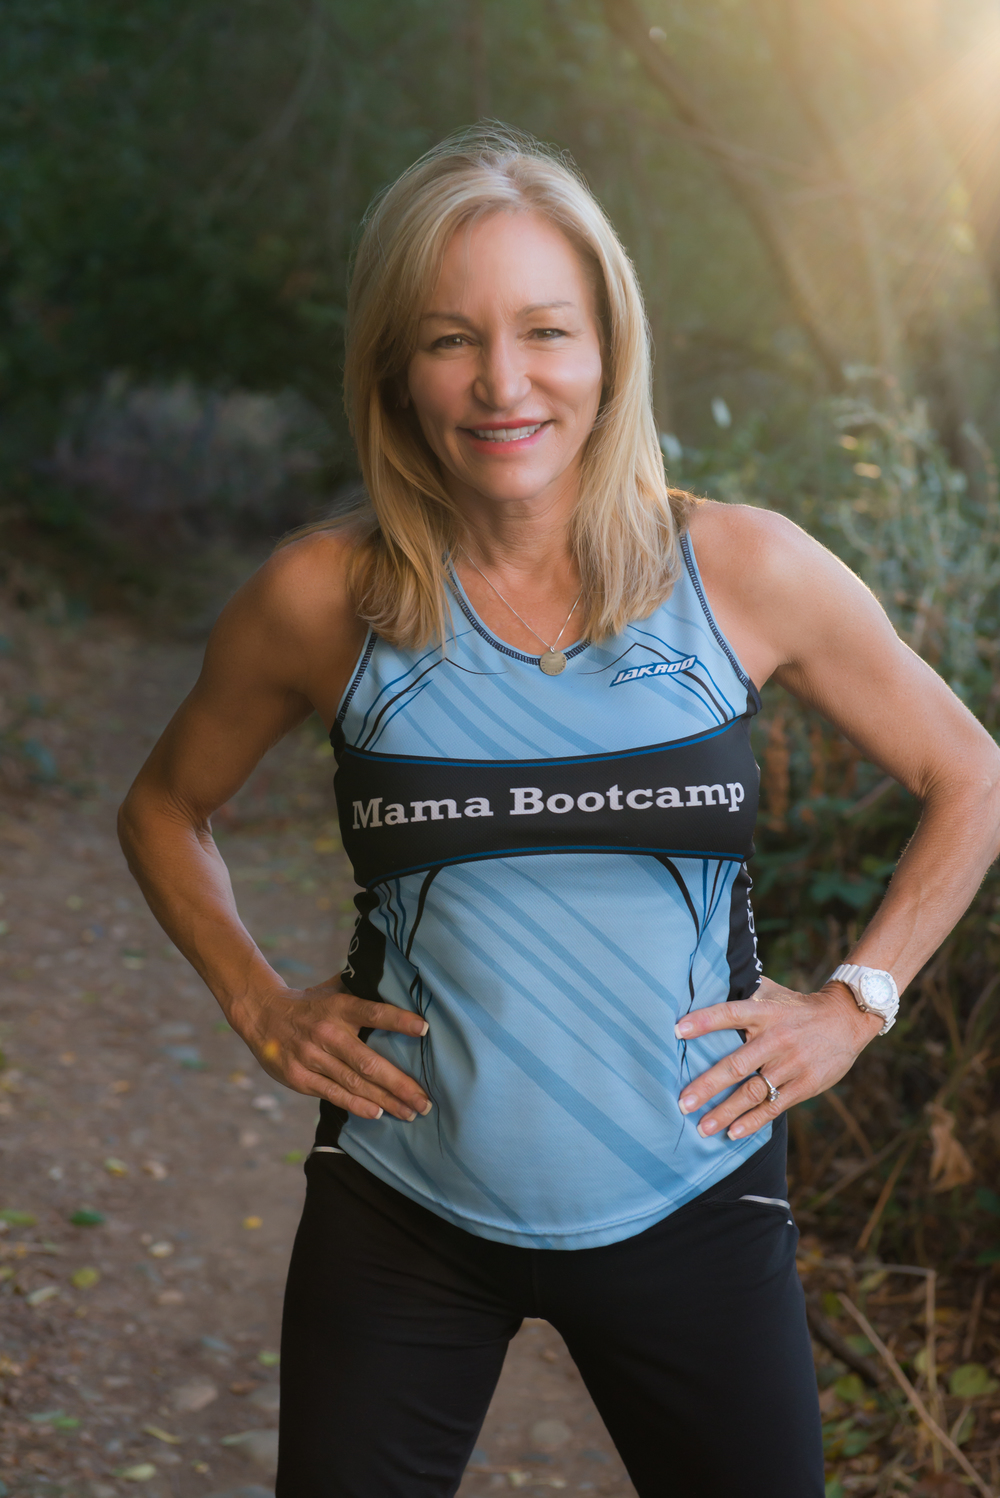 Lorri Ann Code, Founder of Mama Bootcamp